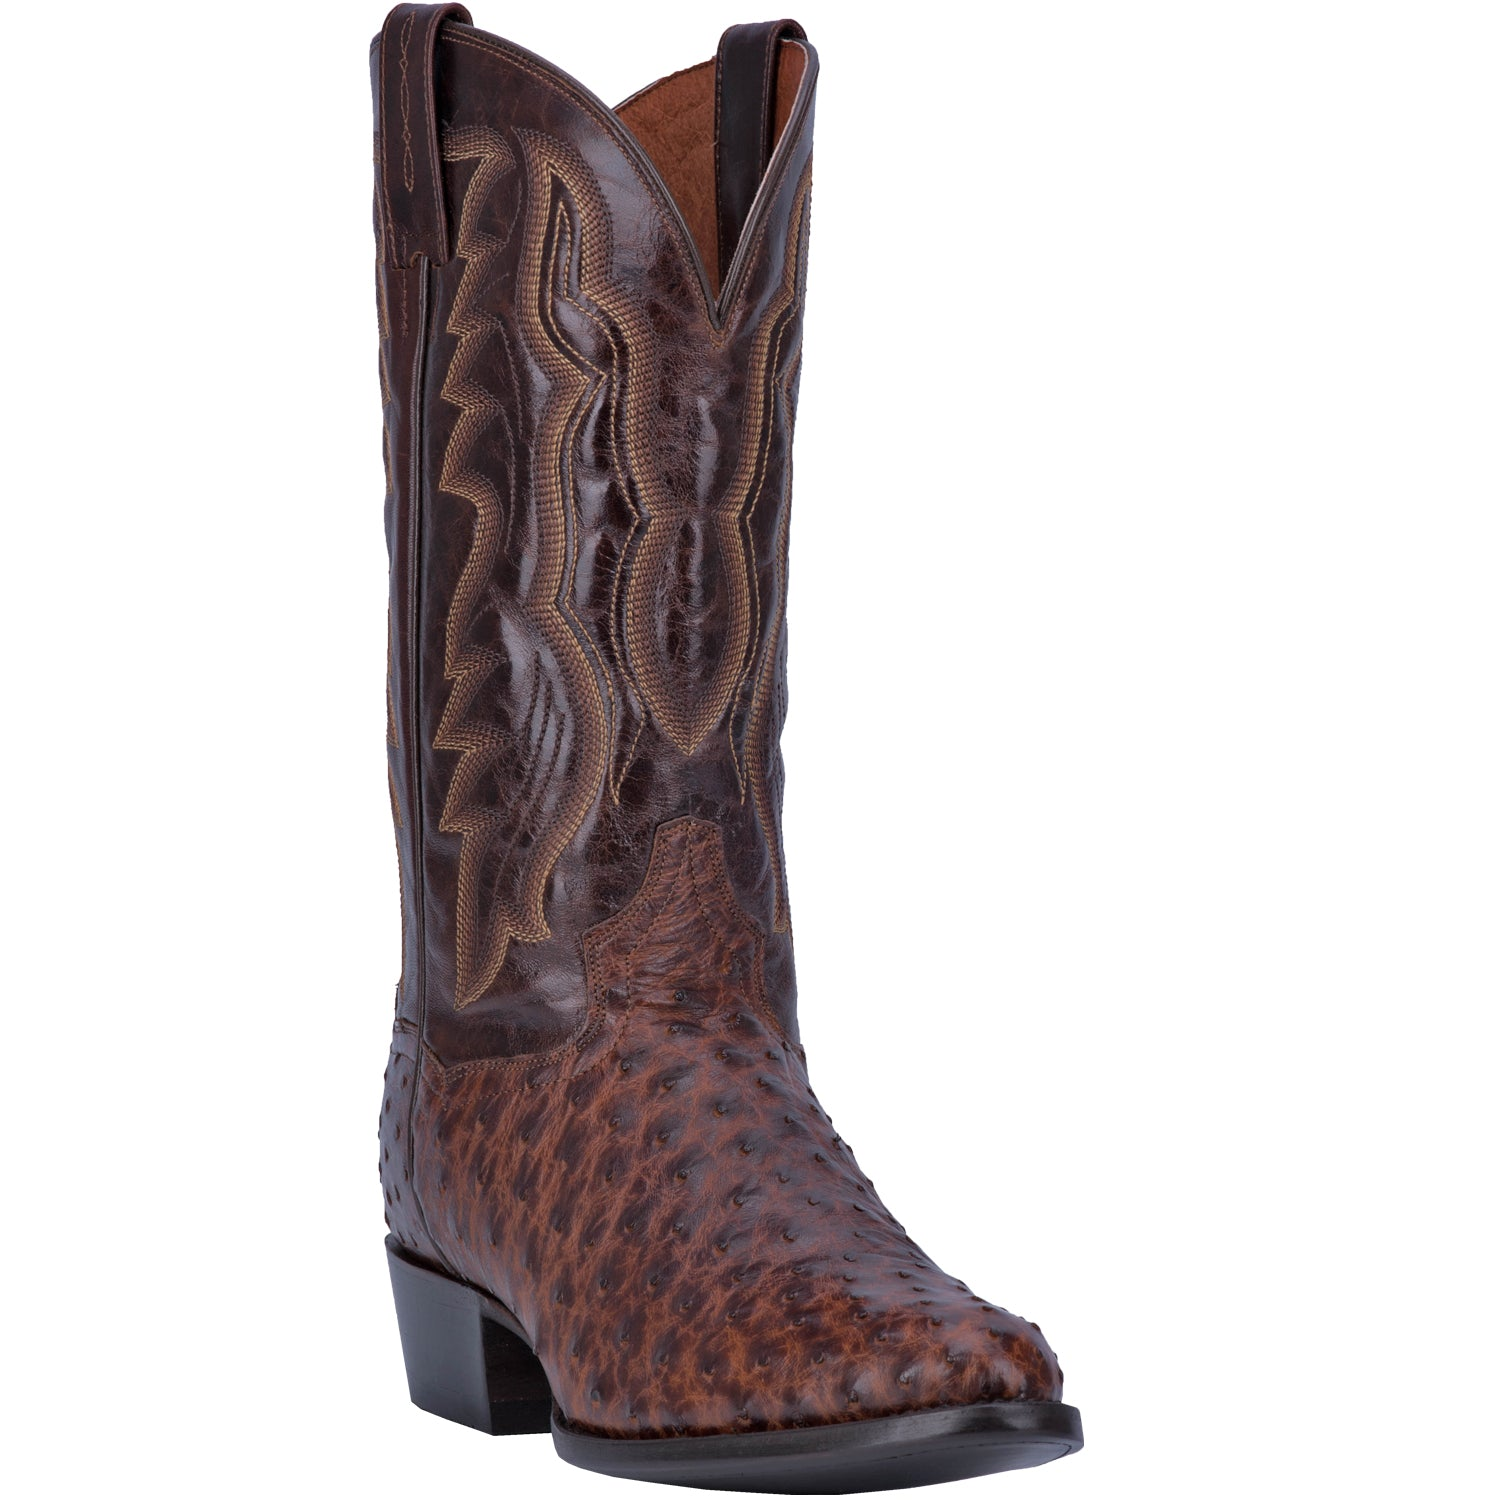 PERSHING FULL QUILL OSTRICH BOOT 4254027218986